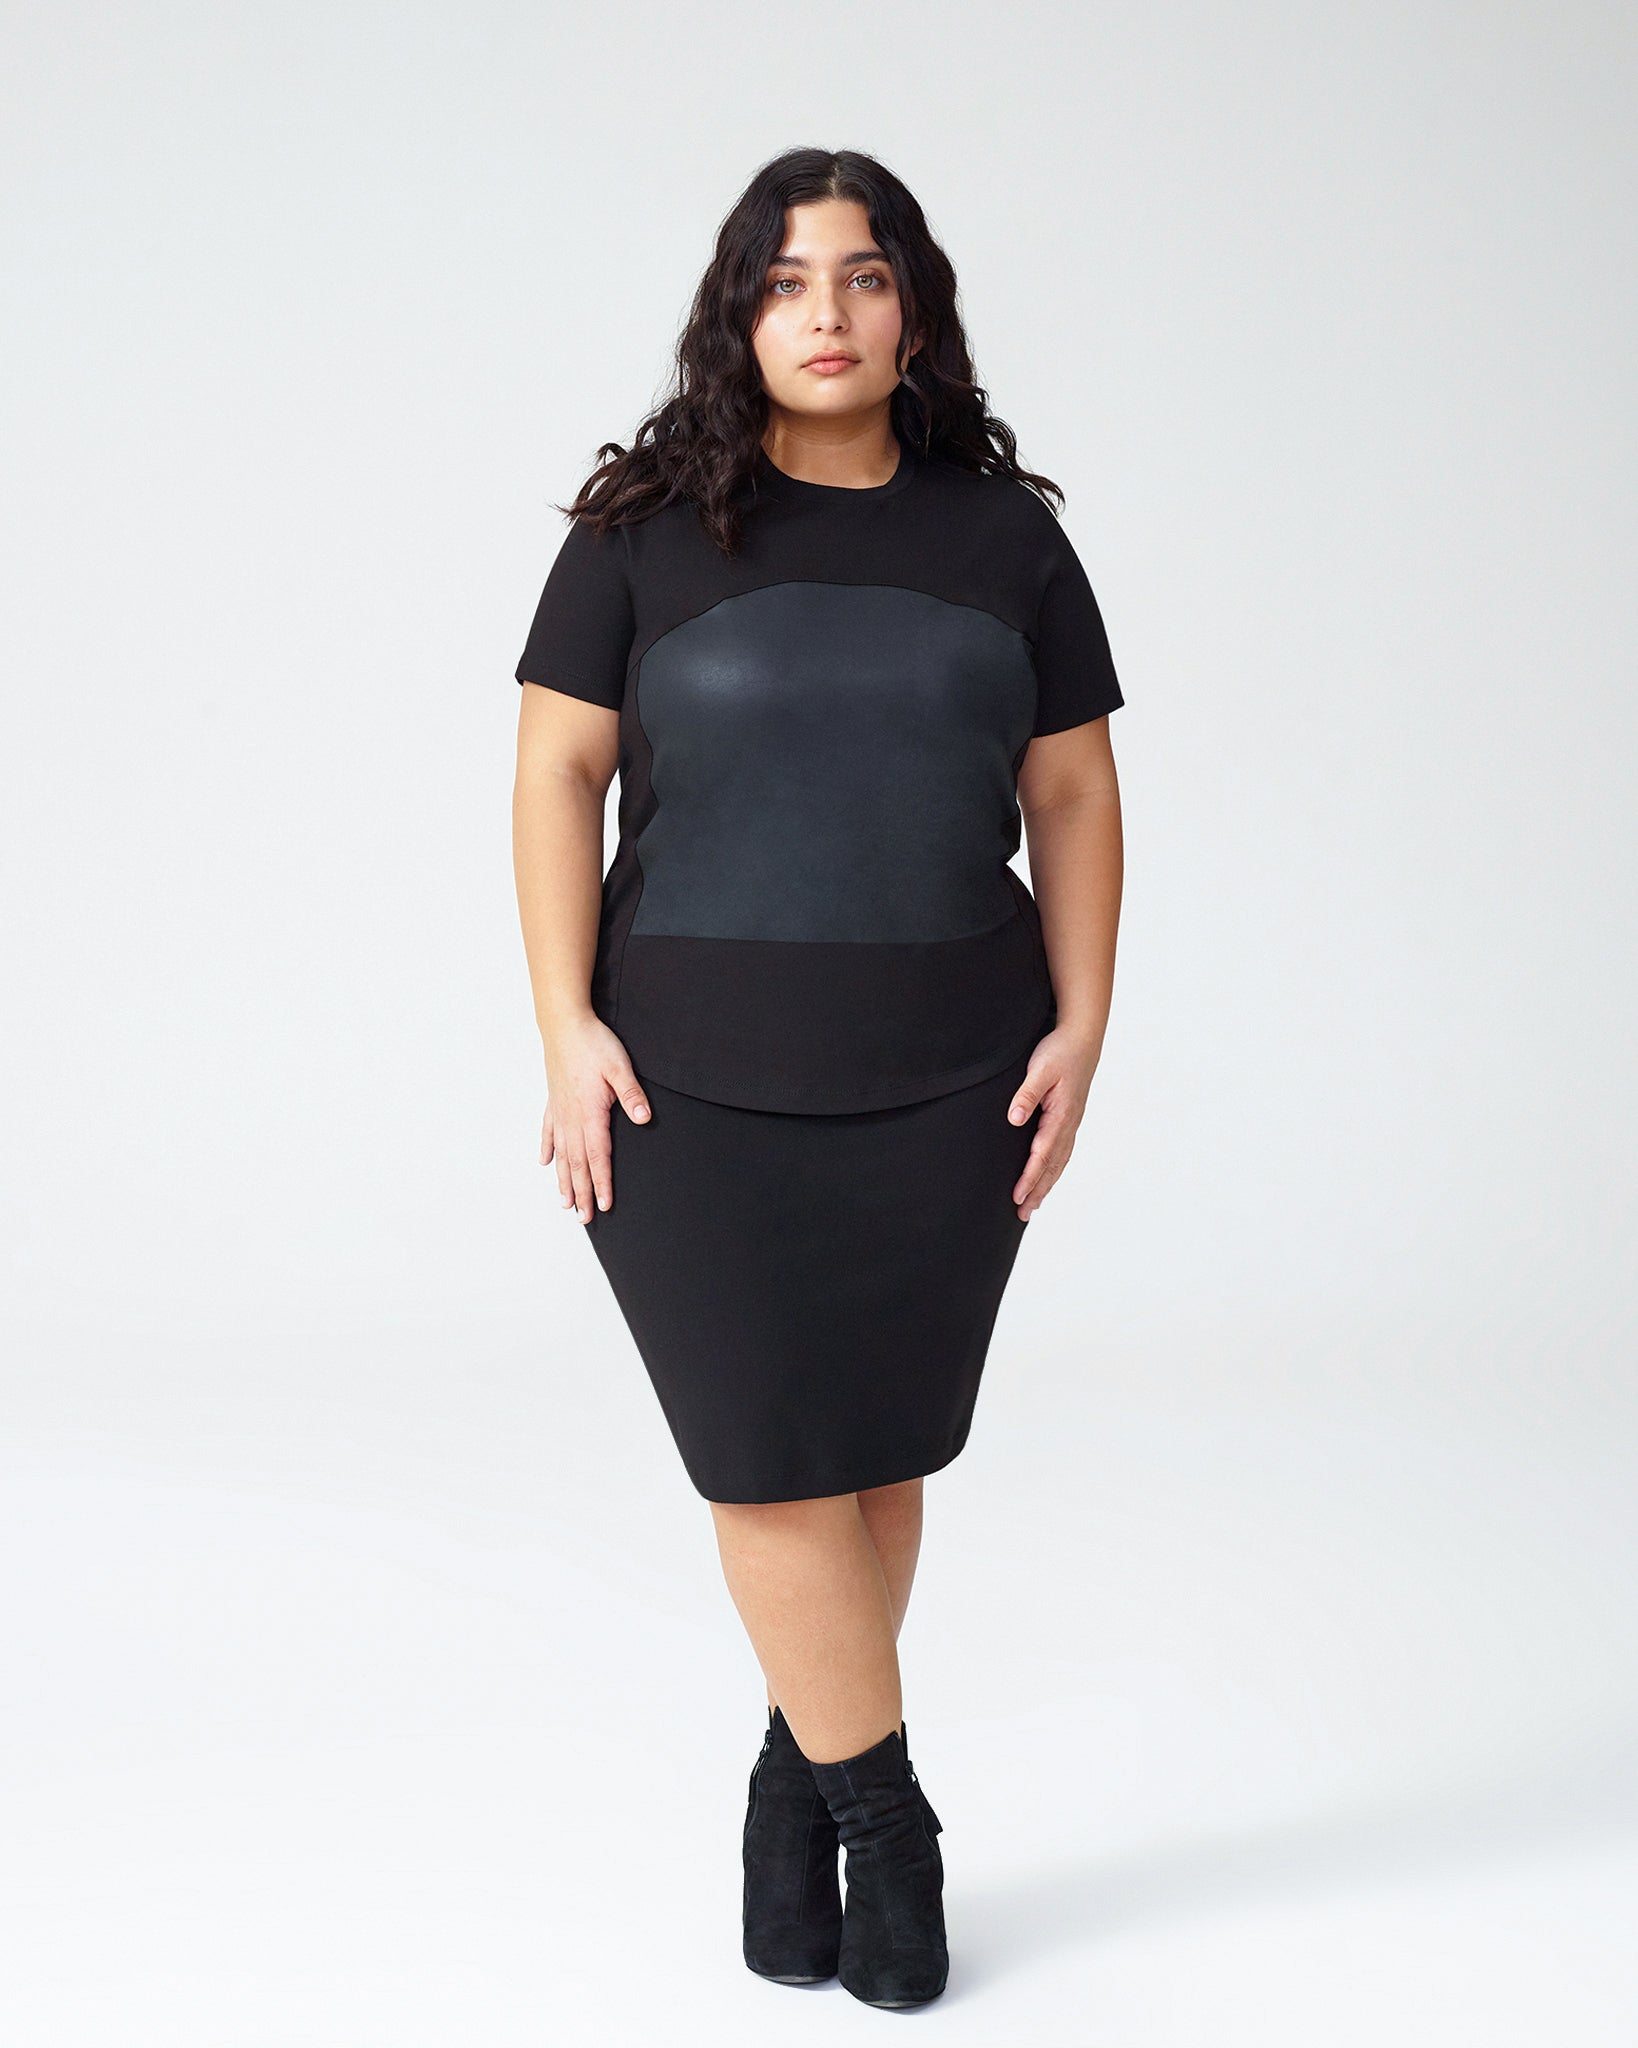 Petite Carver Top - Black